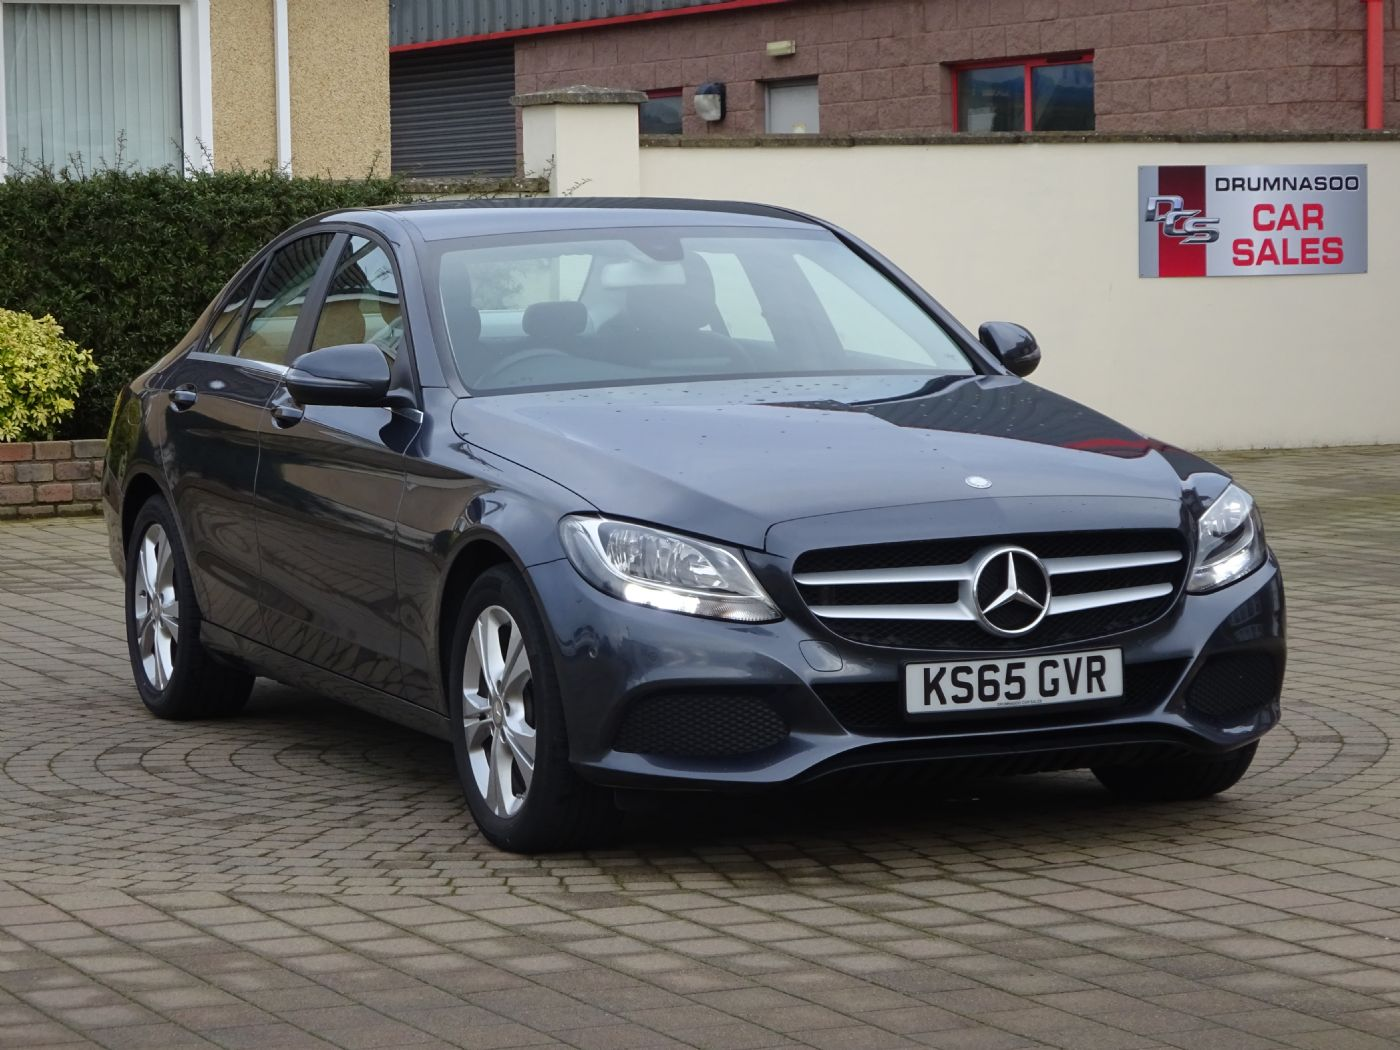 Mercedes-Benz C220 D SE Executive Auto, Sat nav-Rear camera